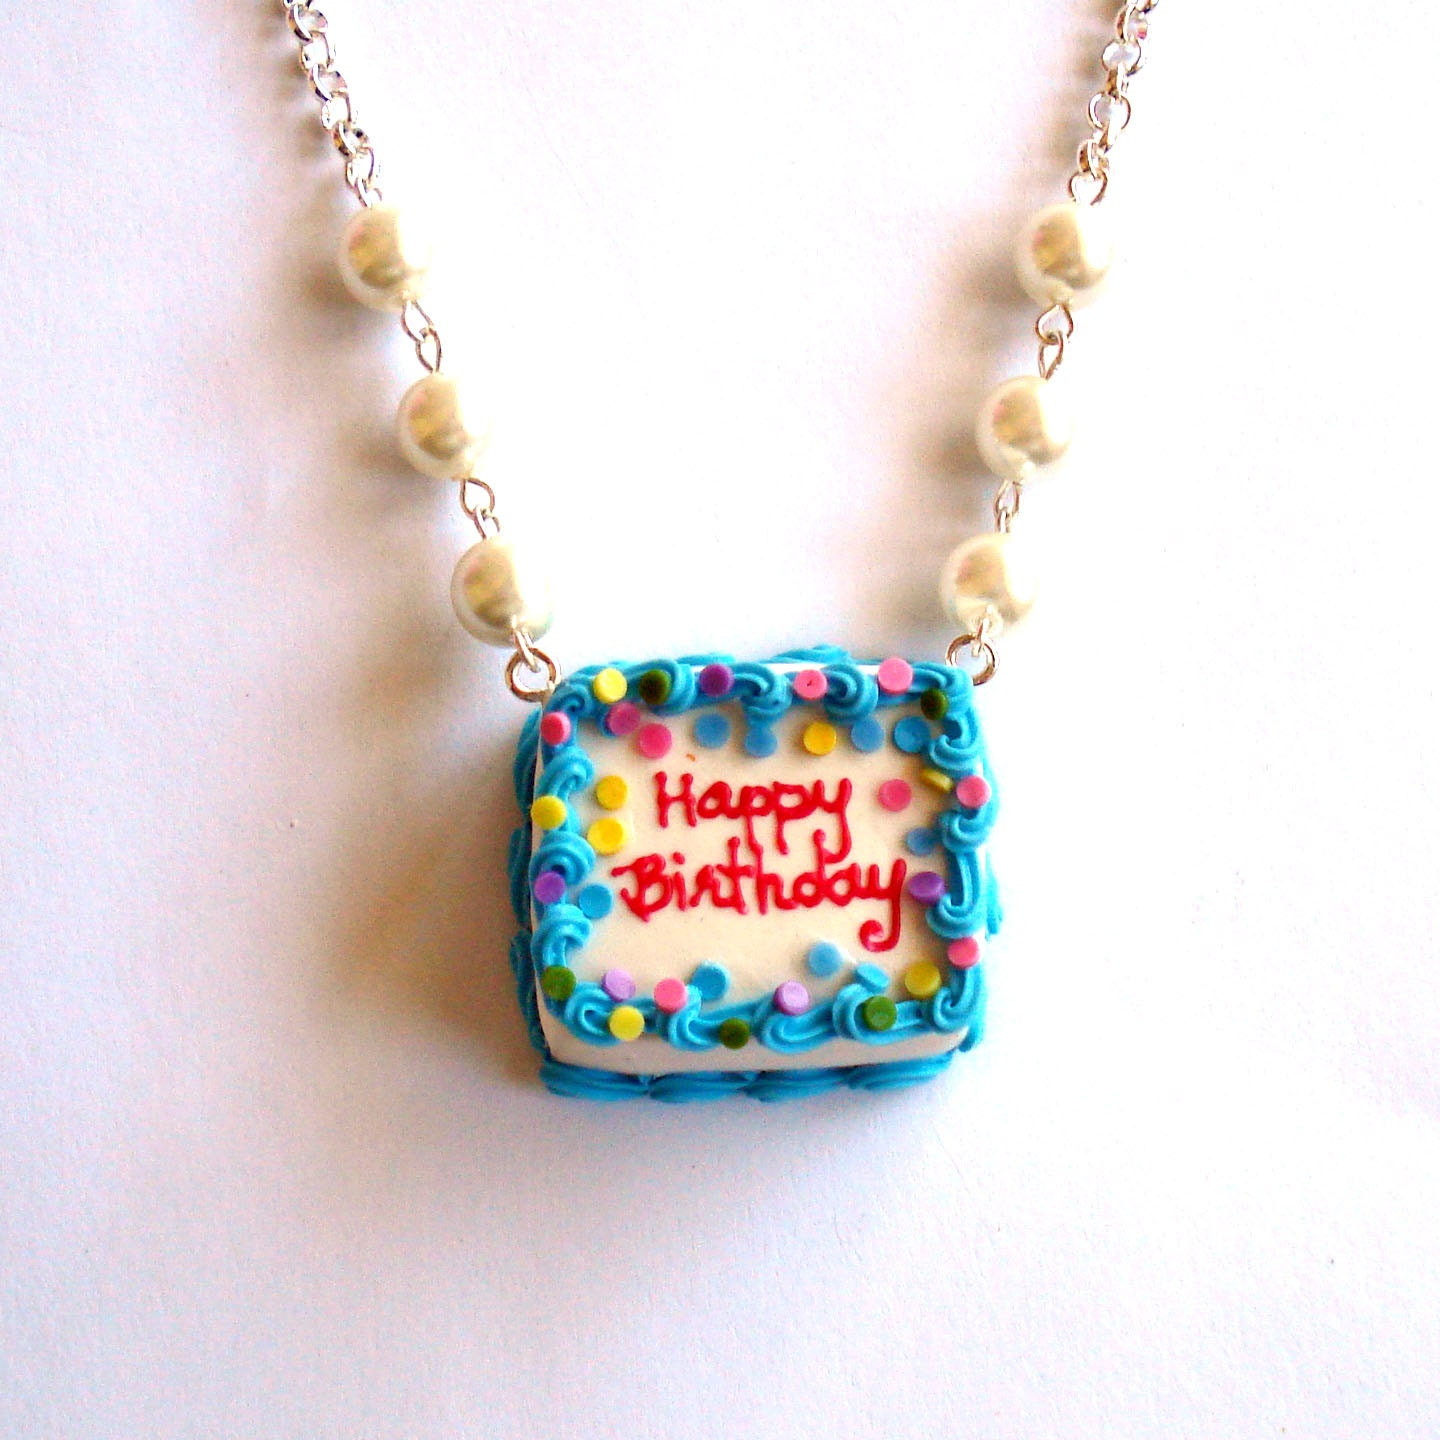 birthday cake necklace happy birthday necklace ice cream